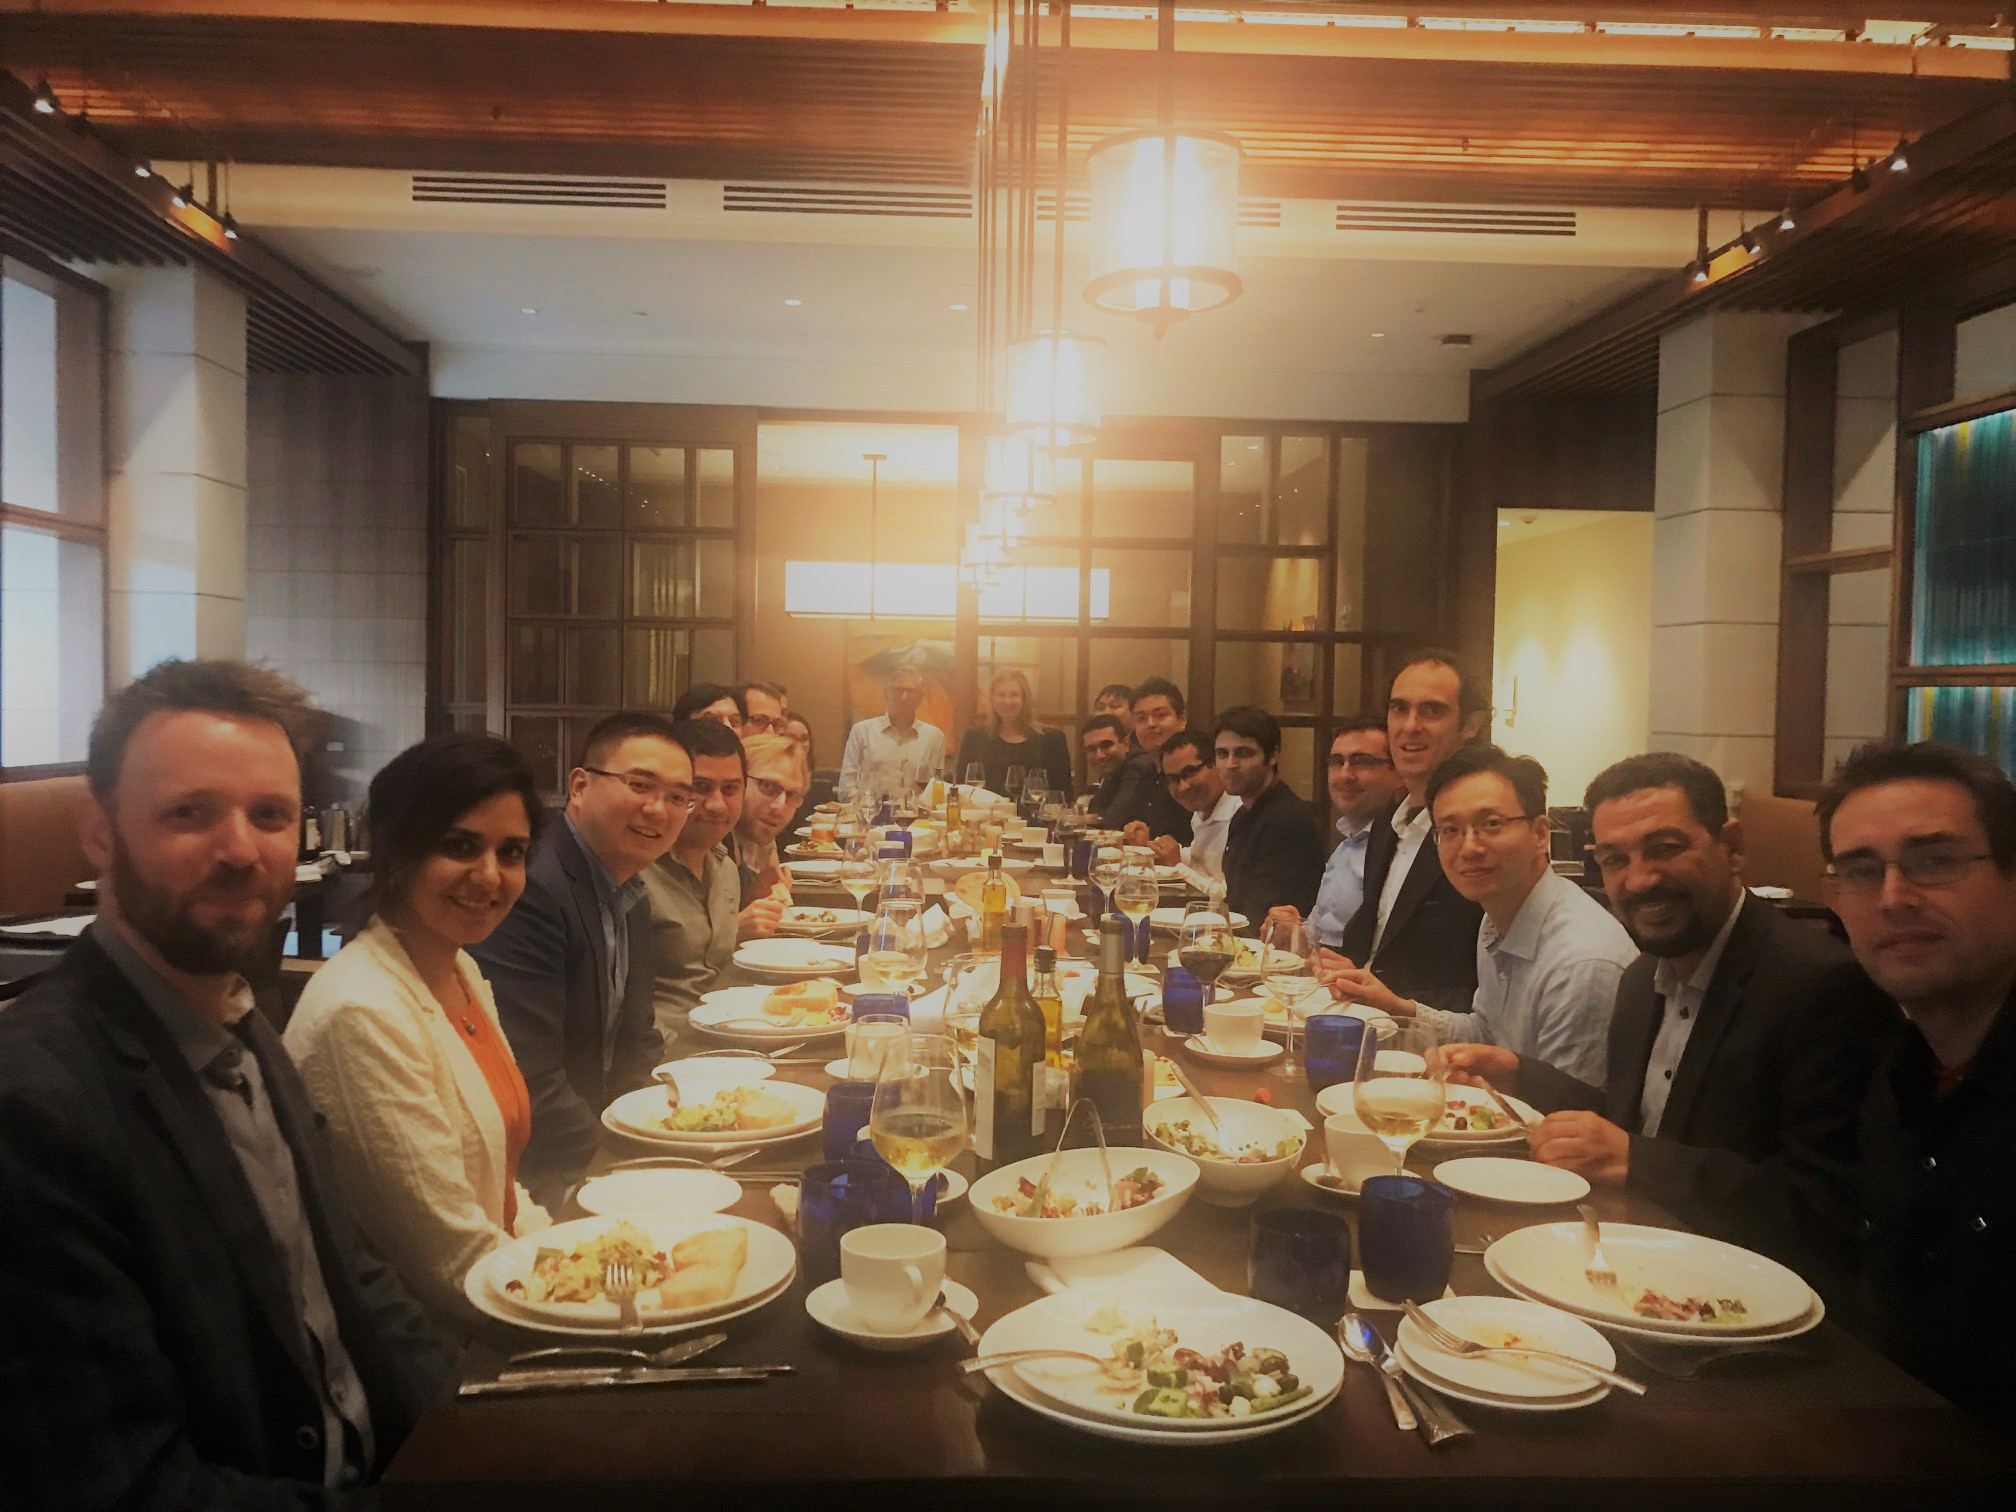 Micro and Nanotechnologies for Medicine Conference Dinner